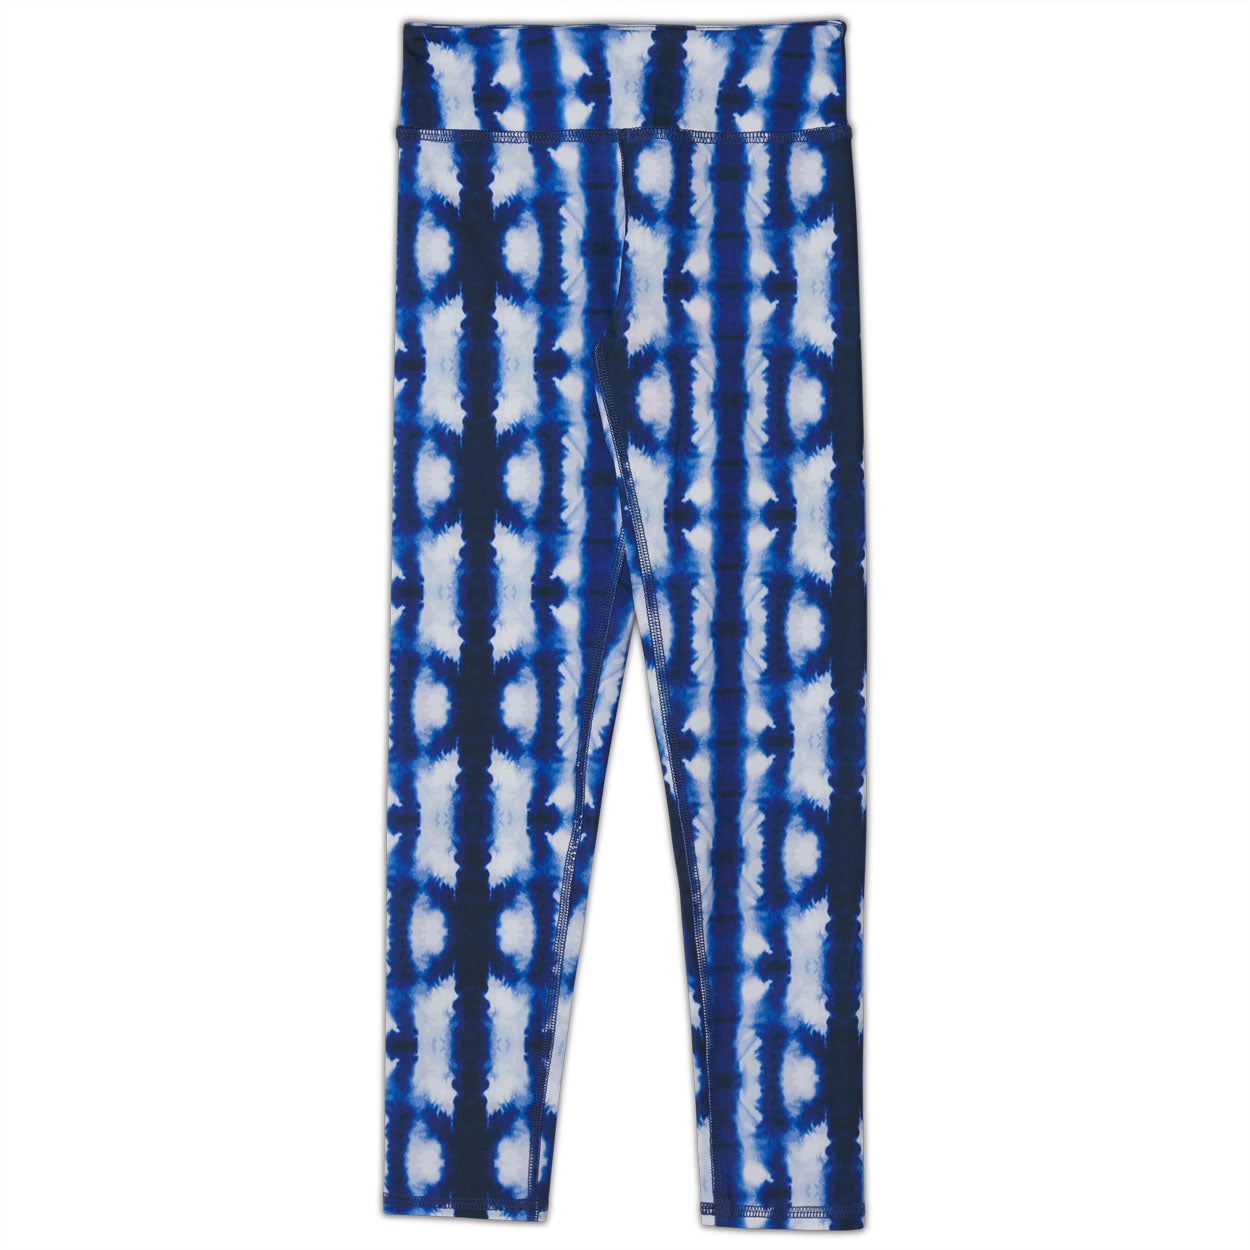 Shibori Hybrid Youth Leggings UPF 50+ for Kids